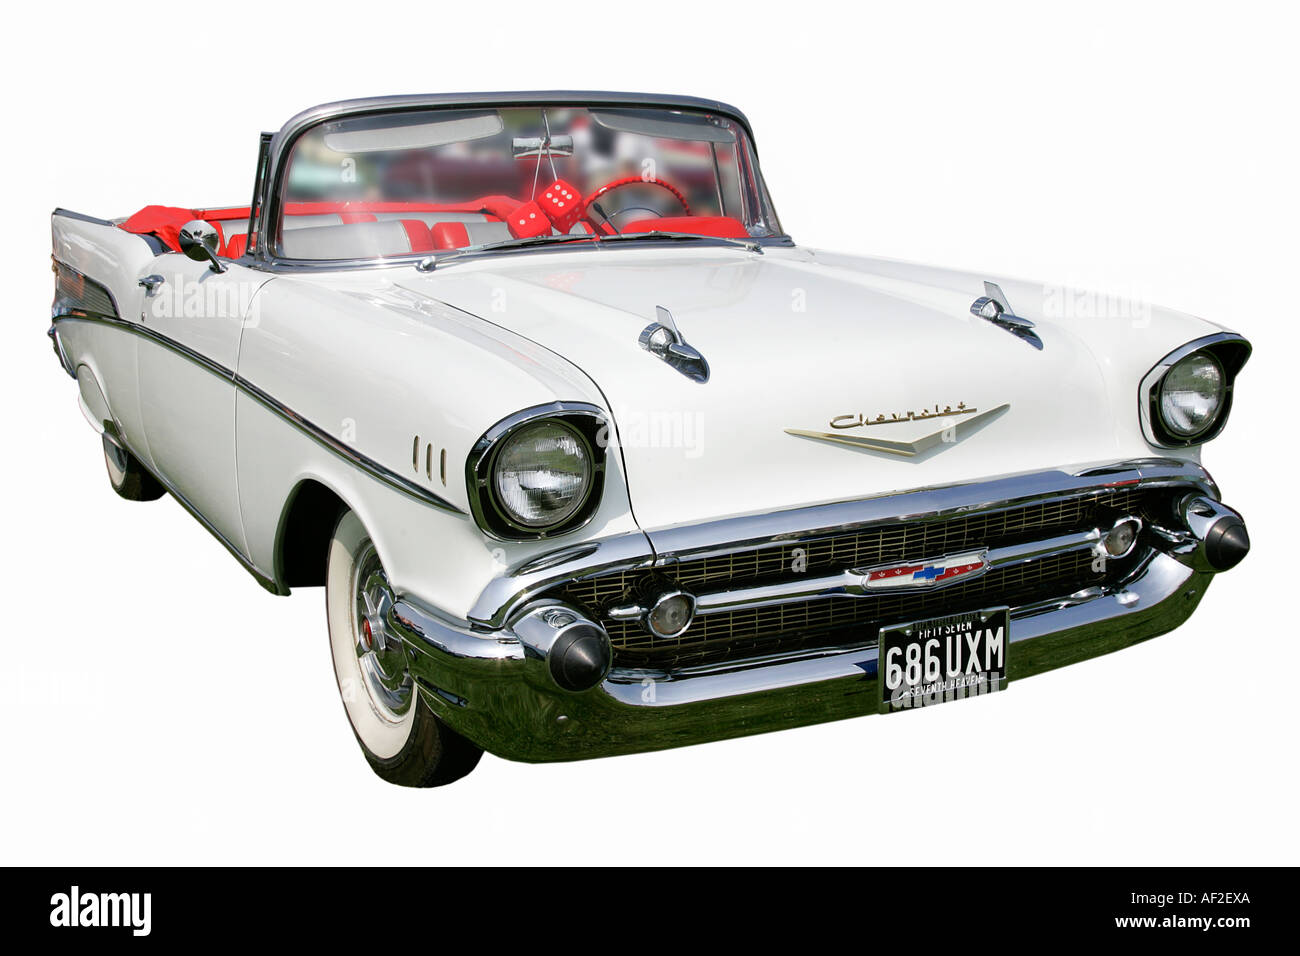 Vintage Car Cut Out Stock Images & Pictures - Alamy